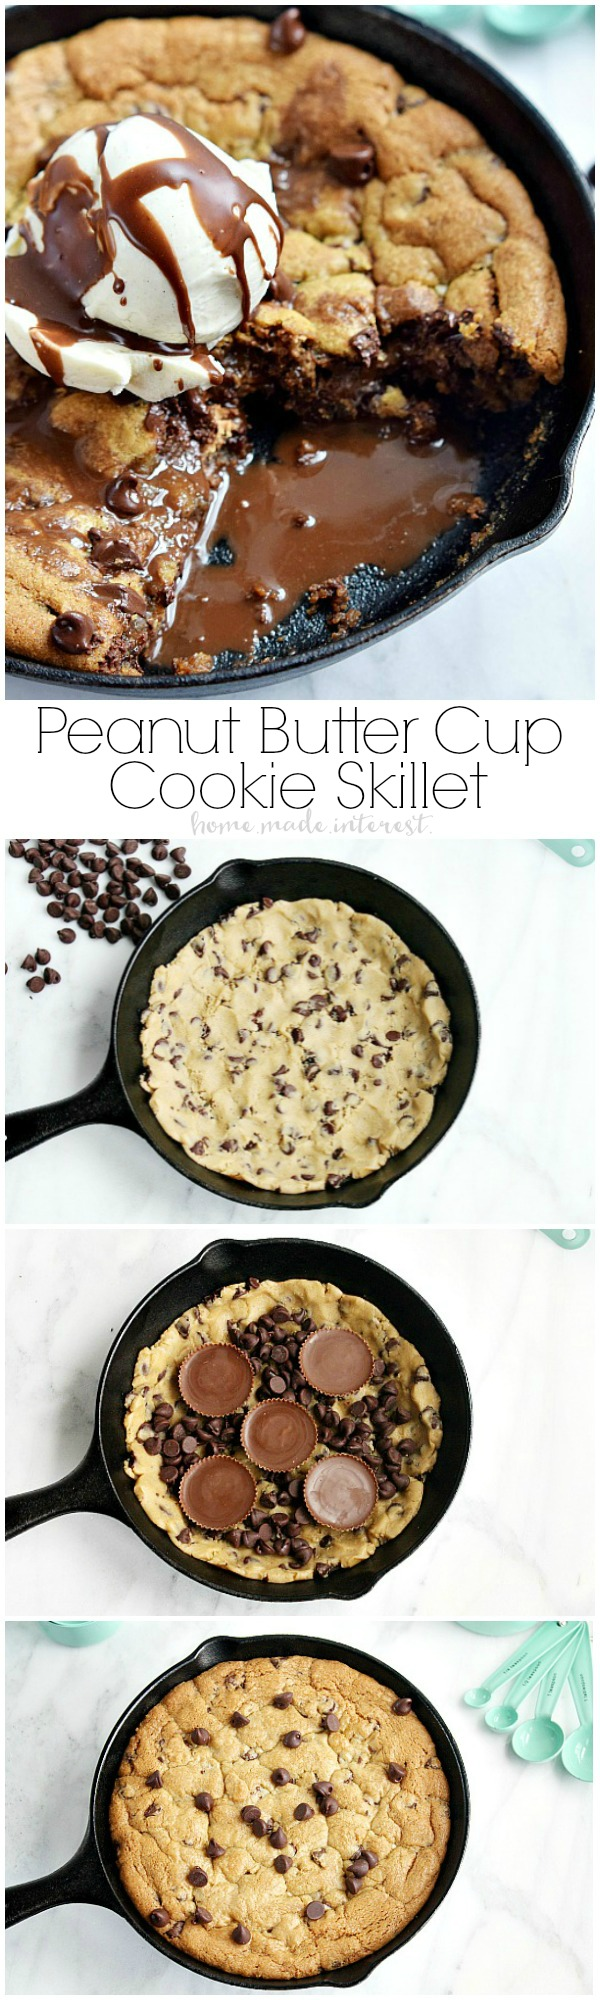 Peanut Butter Cup Skillet Cookie - Home. Made. Interest.